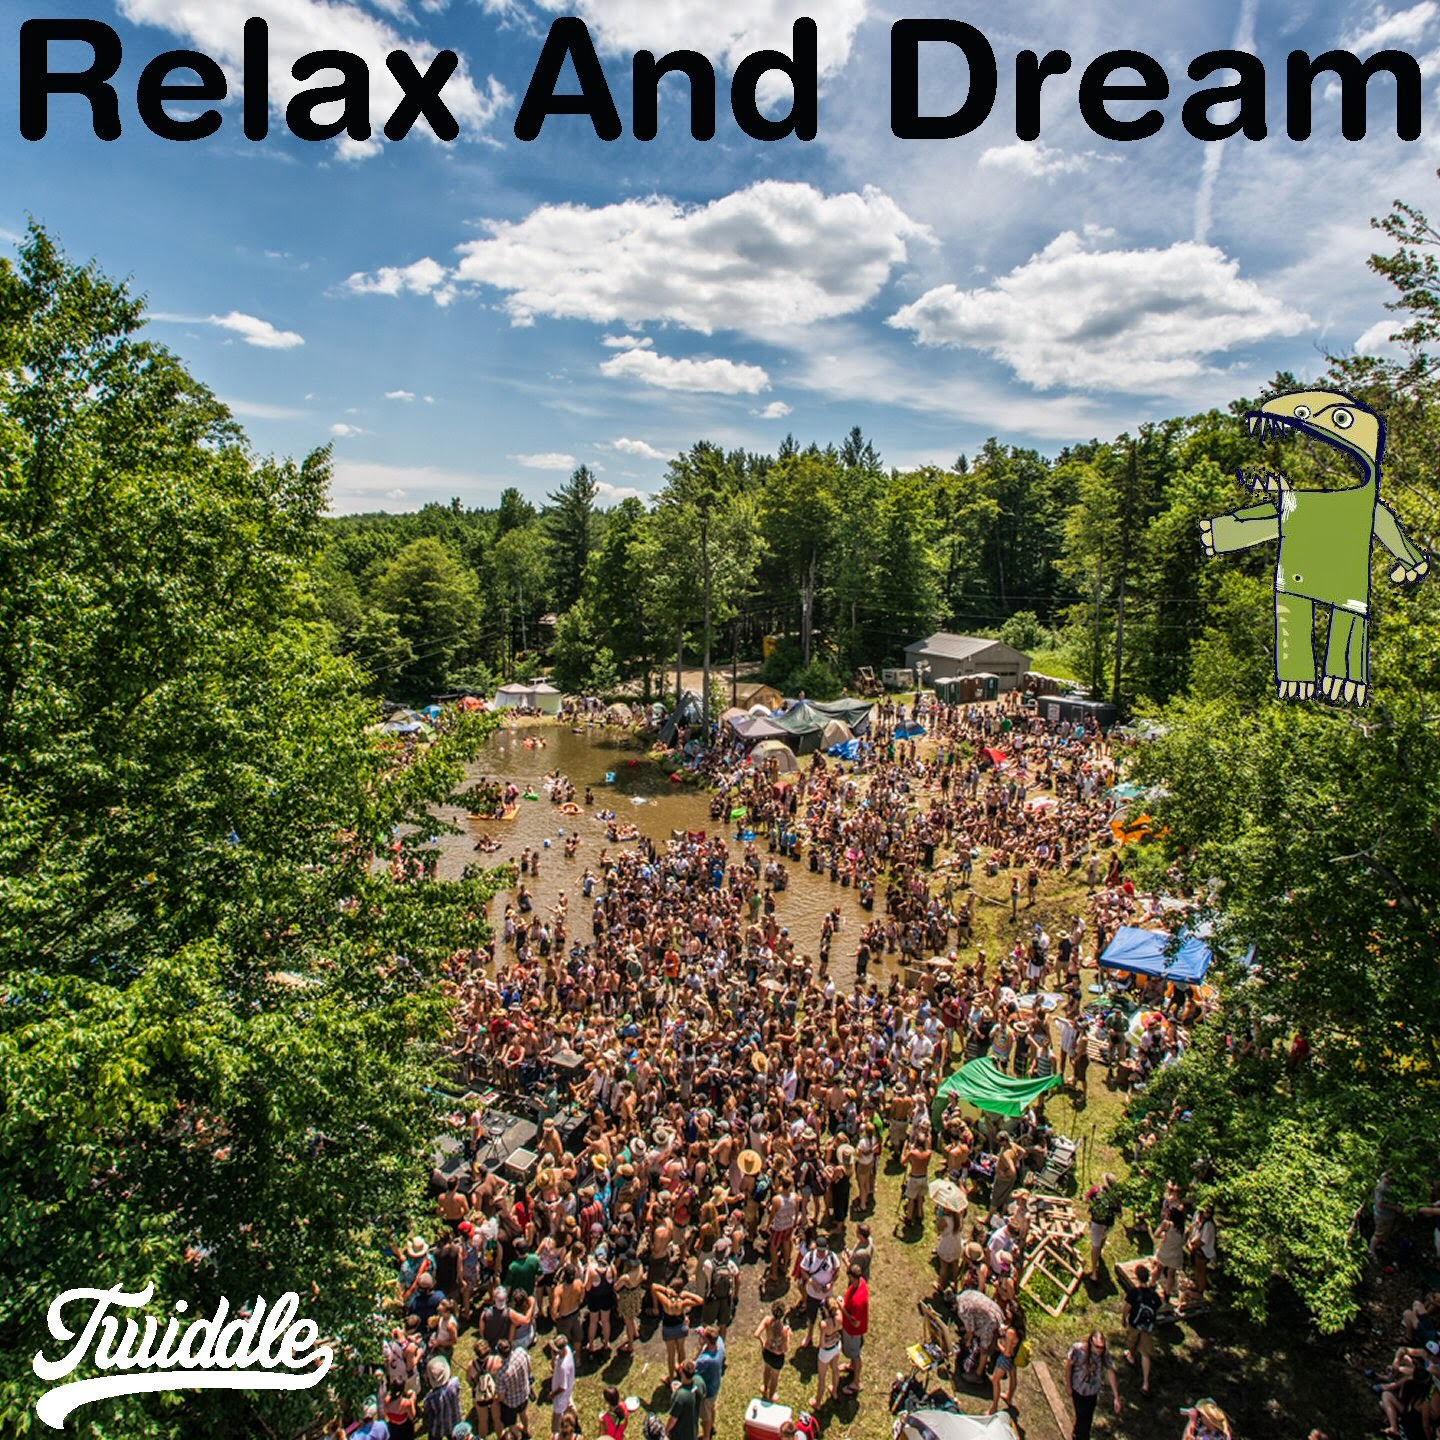 Relax And Dream - A Twiddle Musical